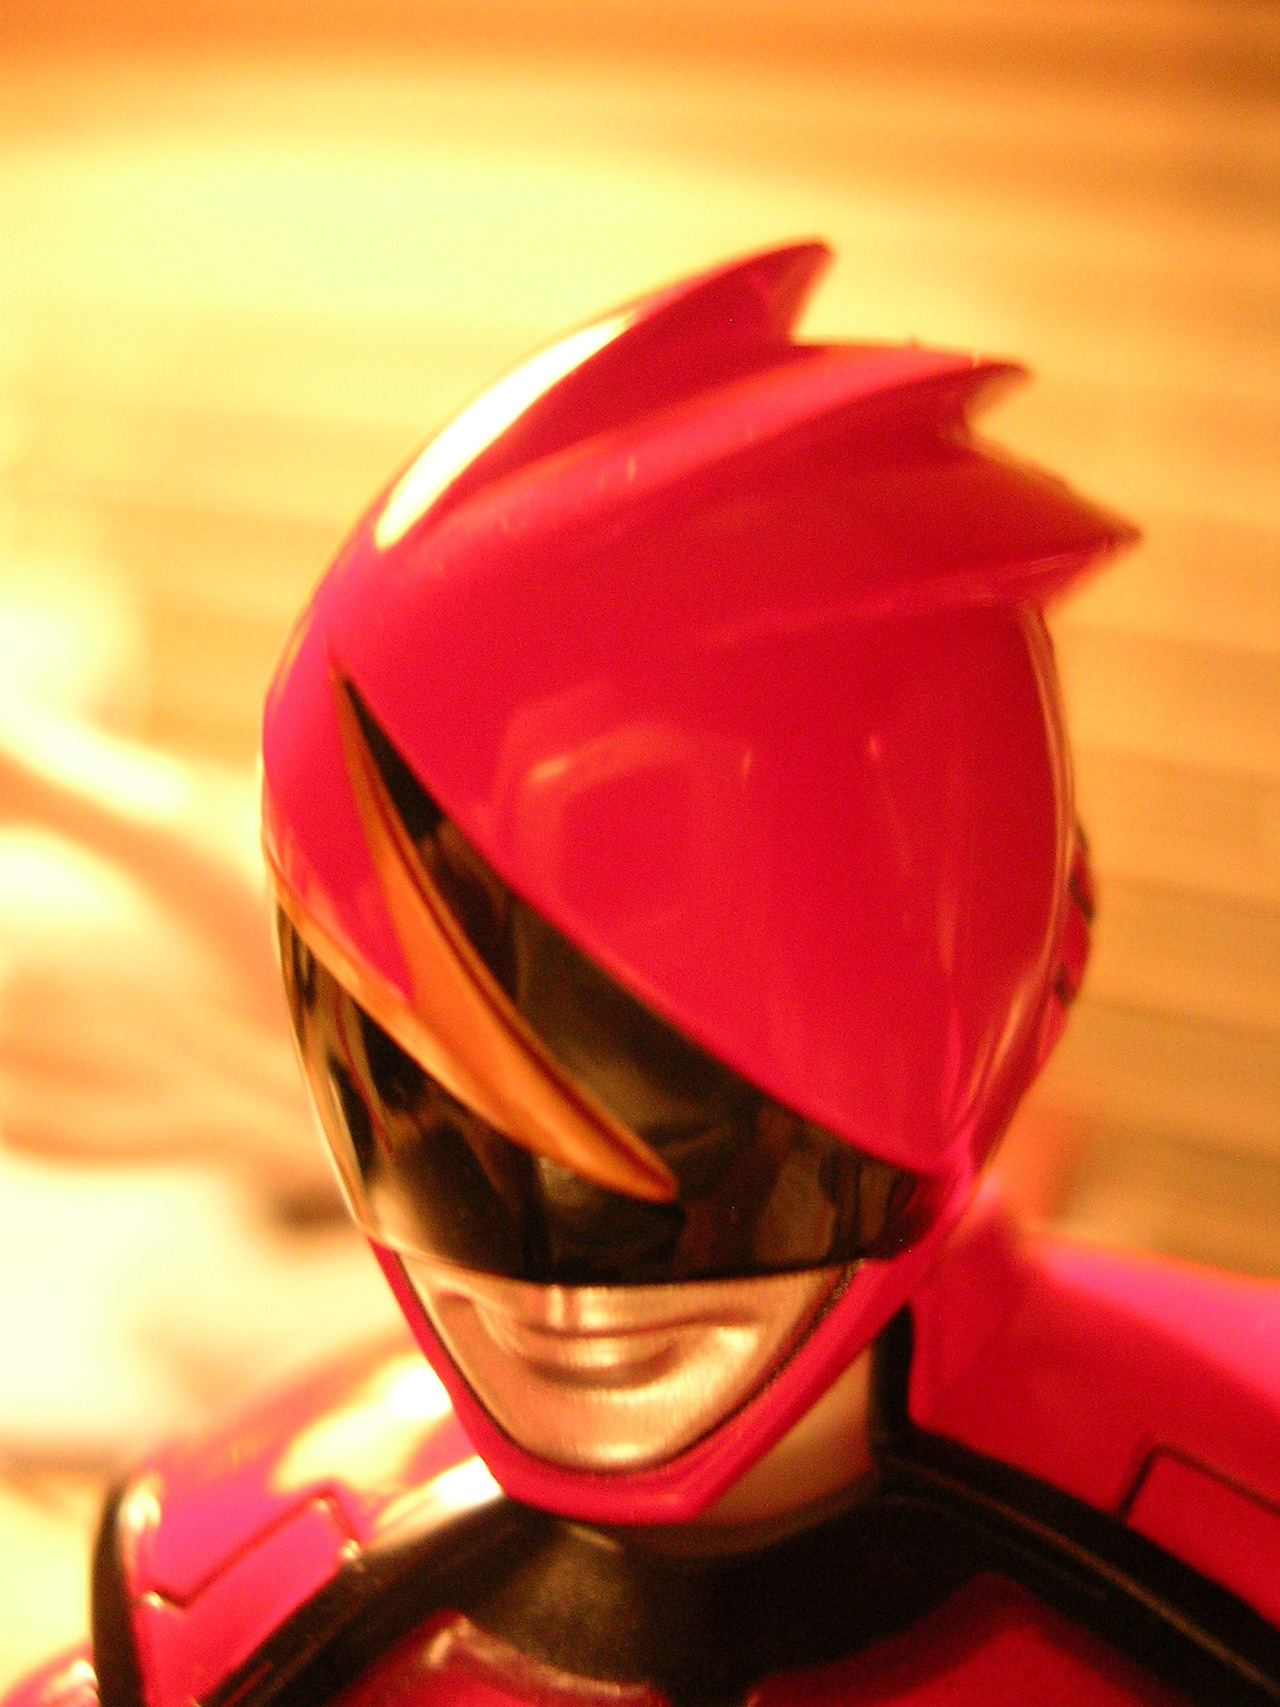 S.H. Figuarts Akiba Red. Video Review soon!